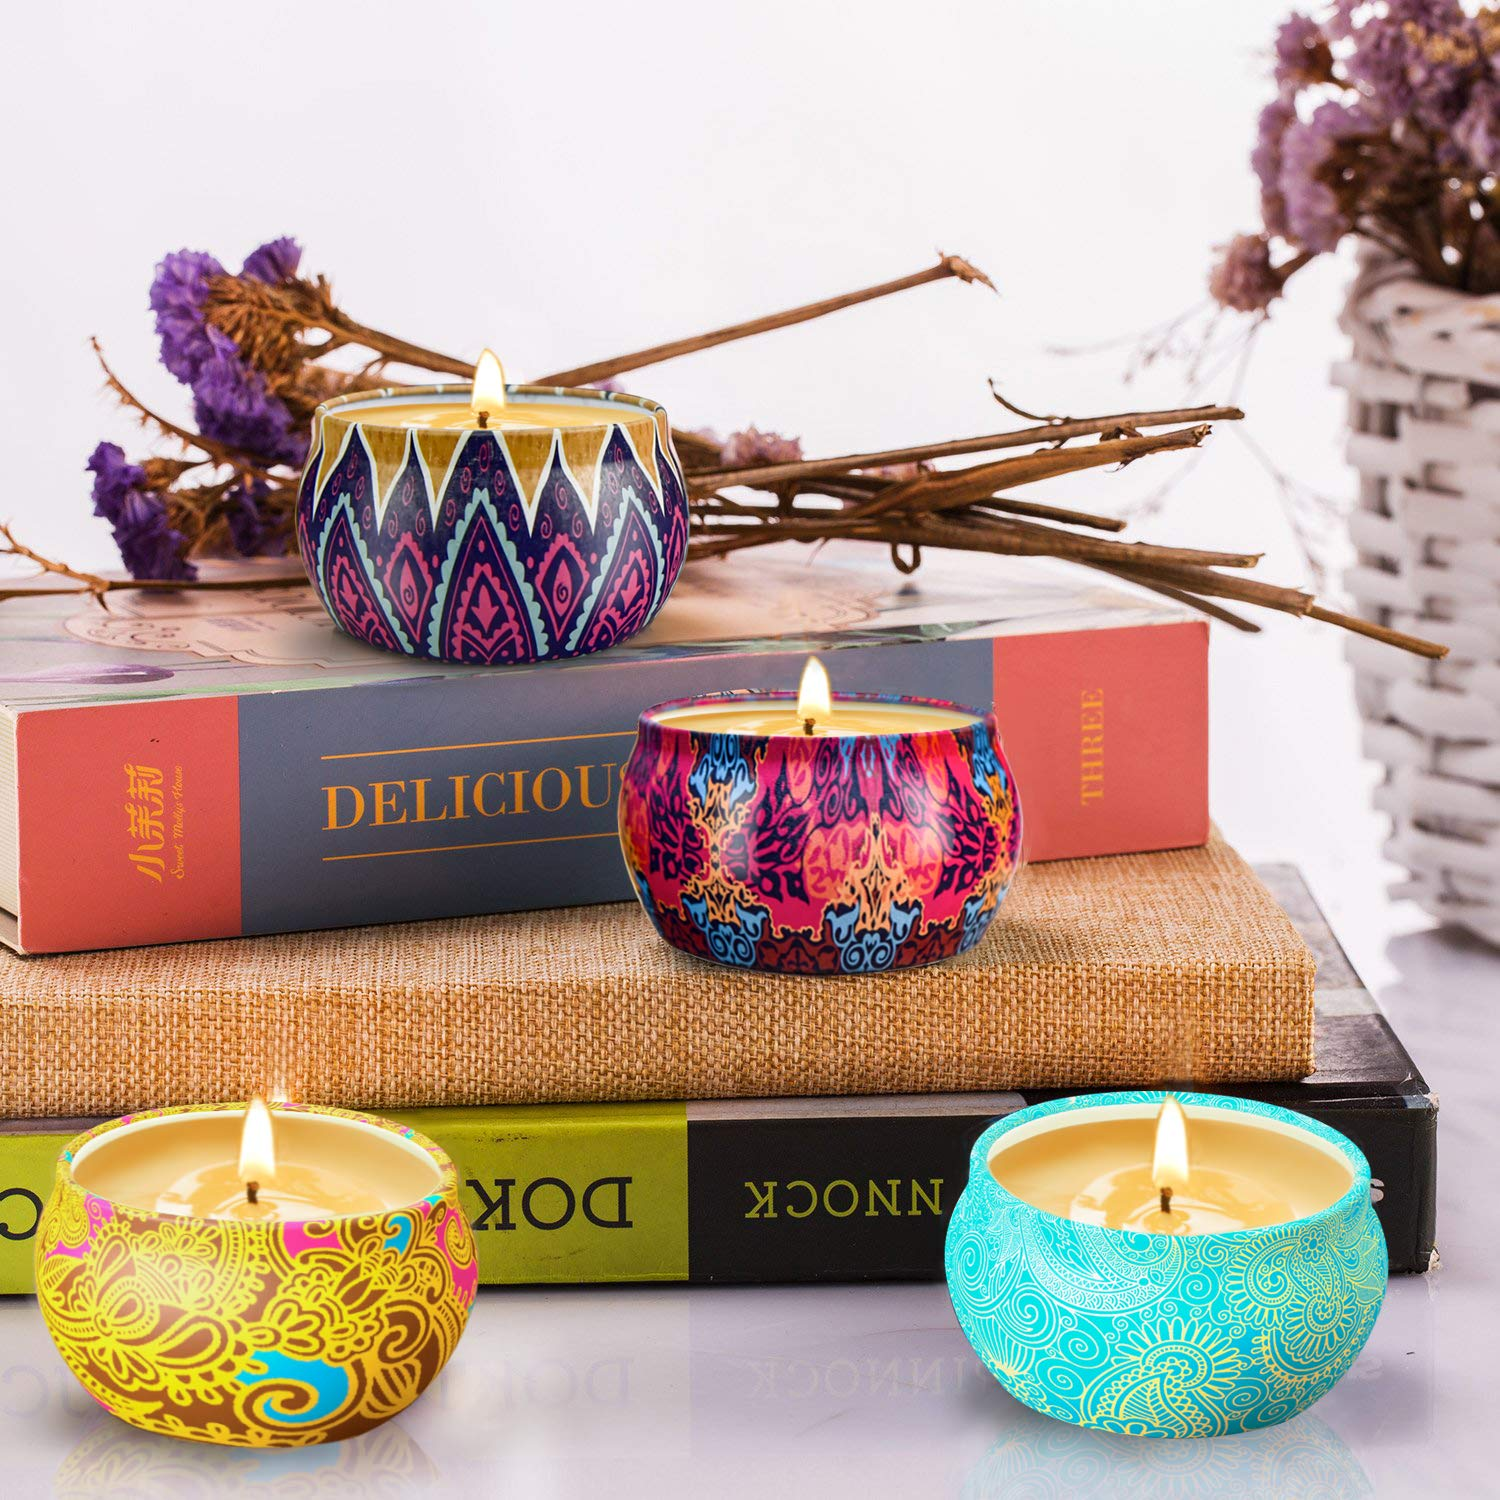 ADVANCED SCENTED CANDLES: Are not only a home accessory ...7% essential oil and 93% pure natural soy wax. Aromatherapy candle gift set of 4 fragrances: Lavender Candle, Freesia Candle, French Vanilla Candle and Rosemary Candle. • LONG LASTING SOY CANDLES: Upgraded large jar of scented candles in 4.4 oz, more than 30 hours burning time, provide natural flower scents, relief and relaxation for you and guests. • FRIENDLY TO PEOPLE: 100% natural soy wax, evenly burning and produce no black smoke, healthier, harmless to human body and environment. • DREAMED GIFT SET: Vintage designed scented candle jars packaged in an exquisite colorful box, show your luxury taste and efforts. Dreamed gift set for your friends and family. • WHAT YOU GET: A carefully designed aromatherapy candle set of 4 natural soy candles. • Decorative in form, color and style • 100% MONEY BACK and LIFETIME WARRANTY. more of 9 Must Have Home Accessories